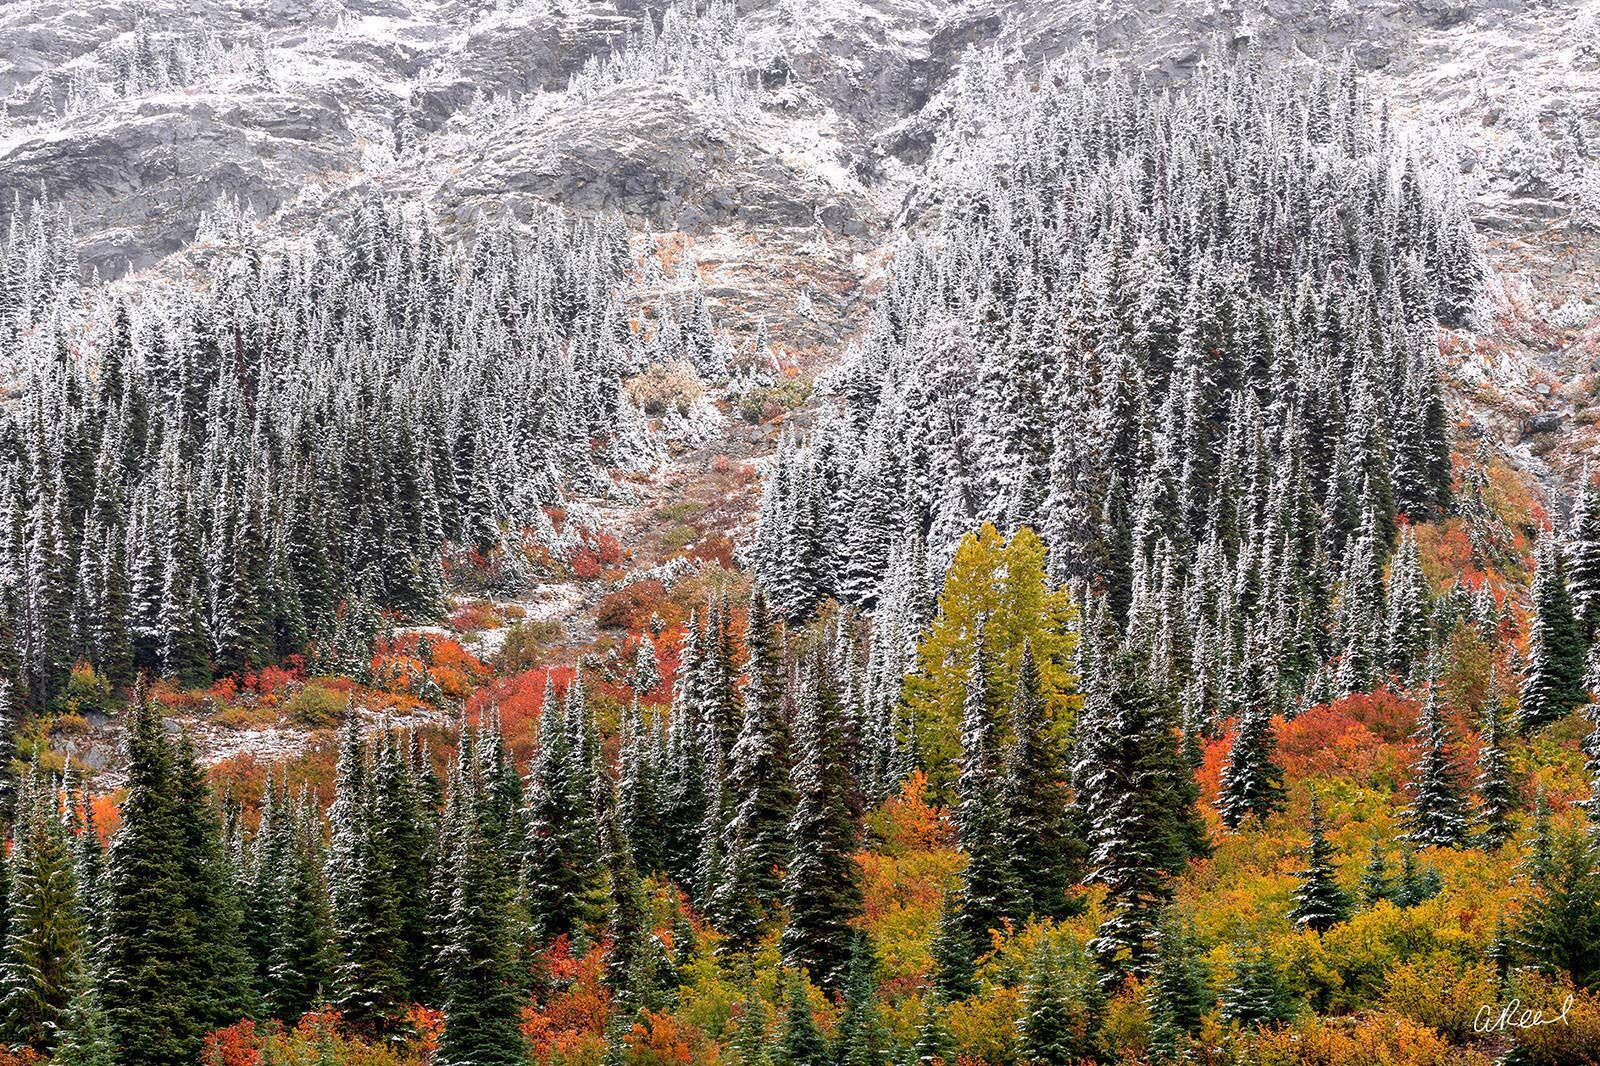 A photograph of a mountainside covered in snow during fall with red, yellow and orange trees and bushes mixed in.